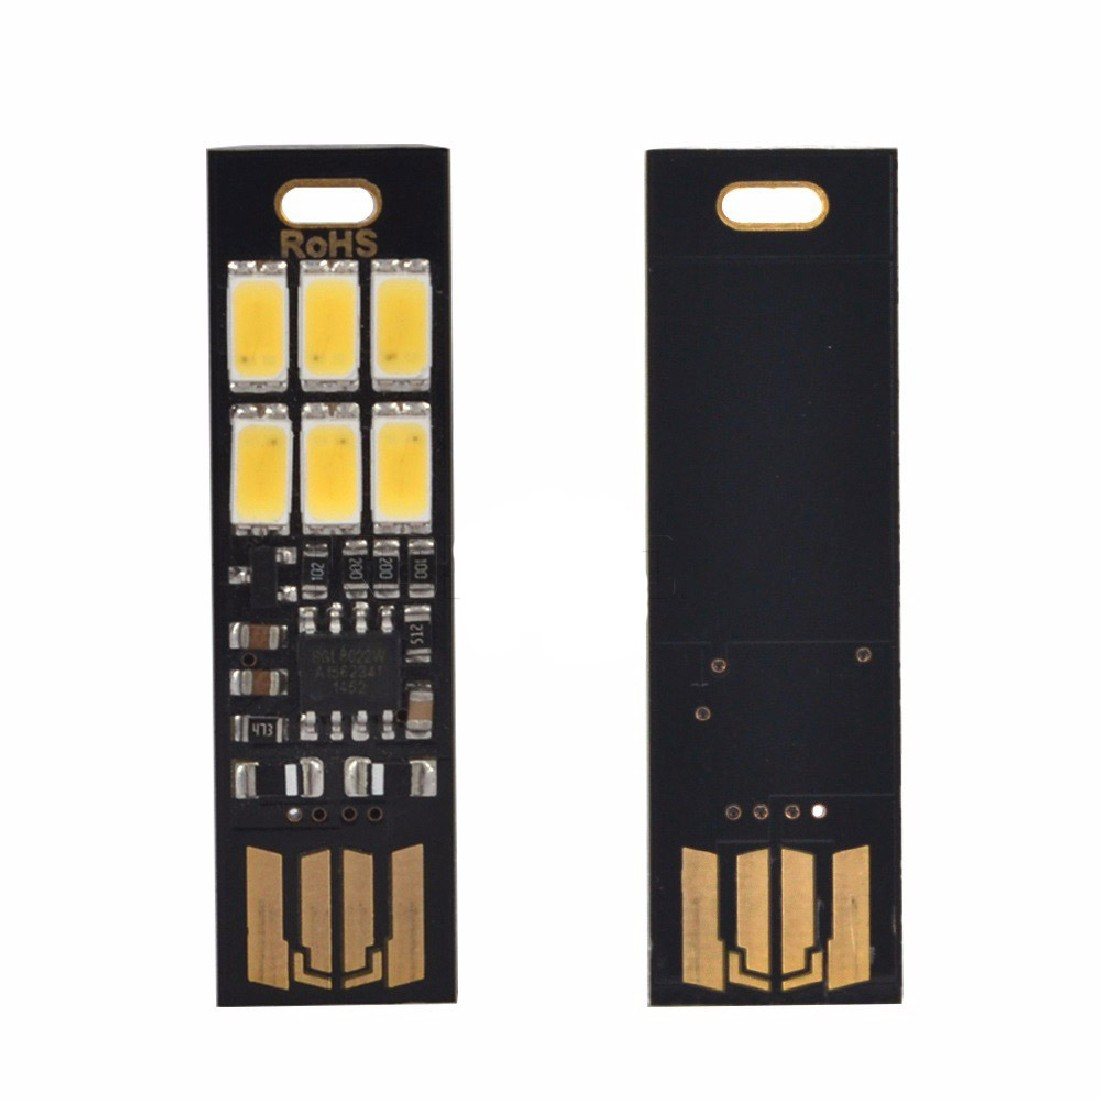 Night Lamp Mini Pocket Card USB Power 6 LED Keychain Night Lights Touch Dimmer Warm Light for Power Bank Computer Laptop